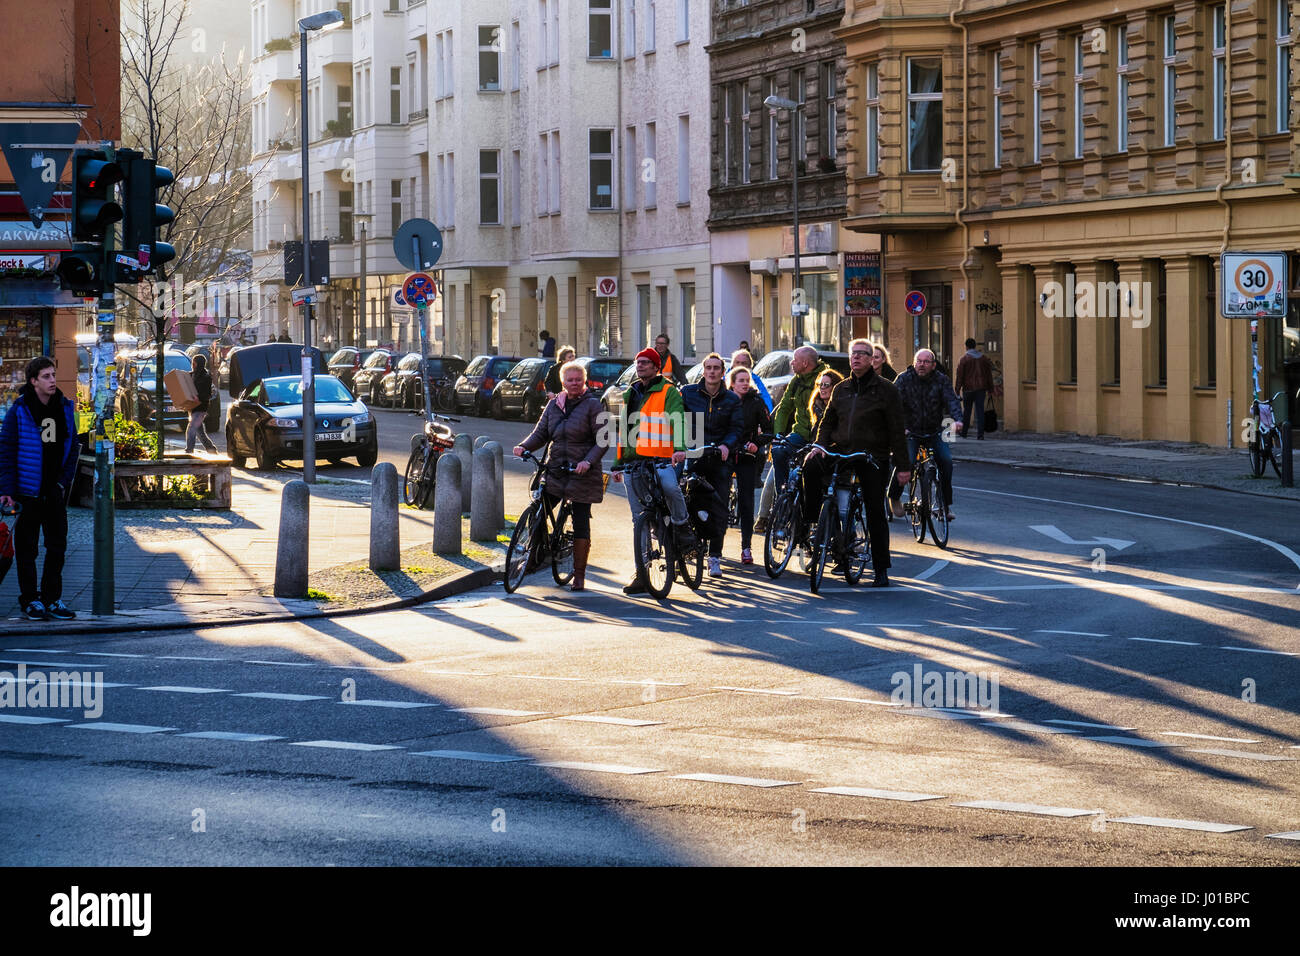 Berlin, Mitte. Group of middle aged tourists on bicycles exploring the City on bikes.Cyclists tour by cycling. - Stock Image